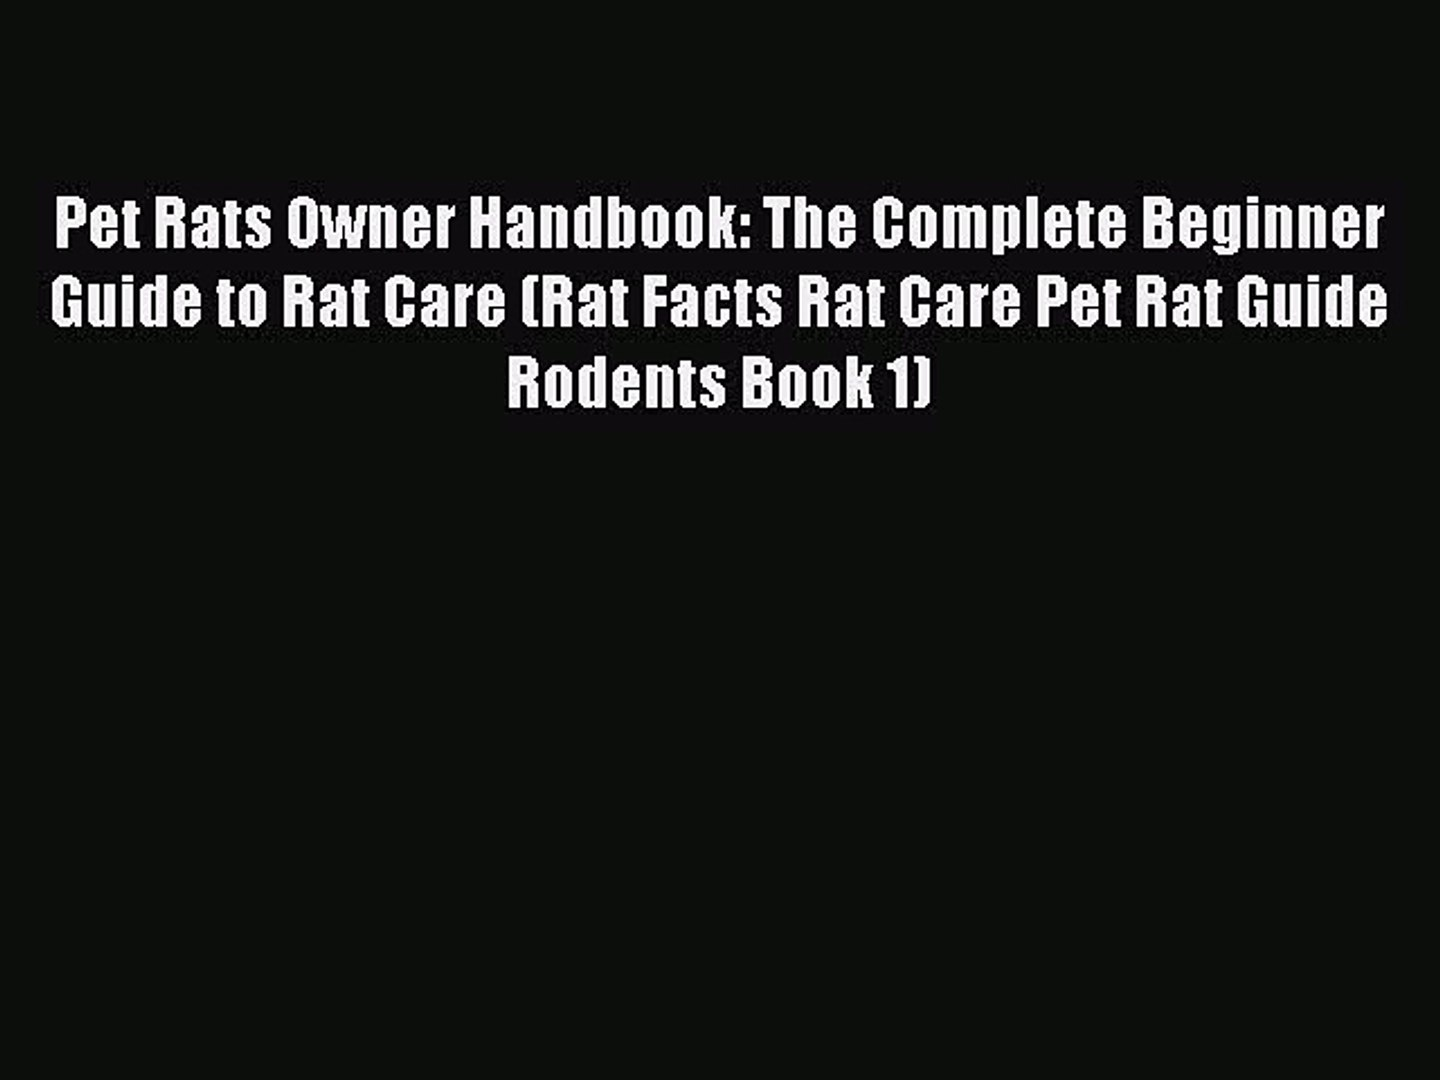 PDF Pet Rats Owner Handbook: The Complete Beginner Guide to Rat Care (Rat Facts Rat Care Pet